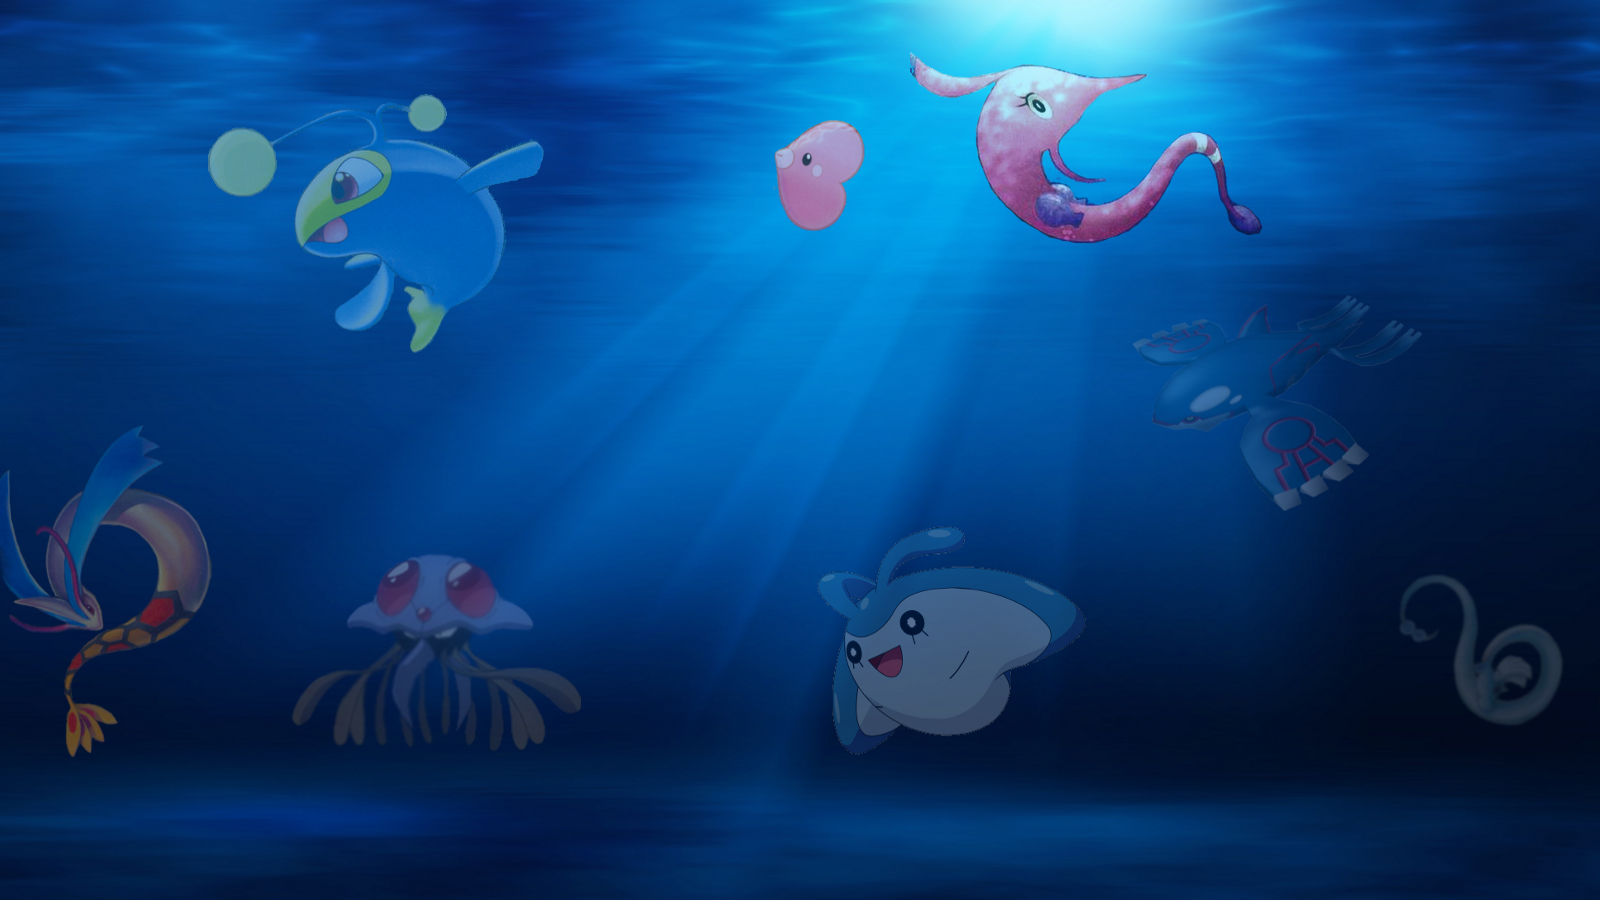 Underwater pokemon by Liriane on DeviantArt